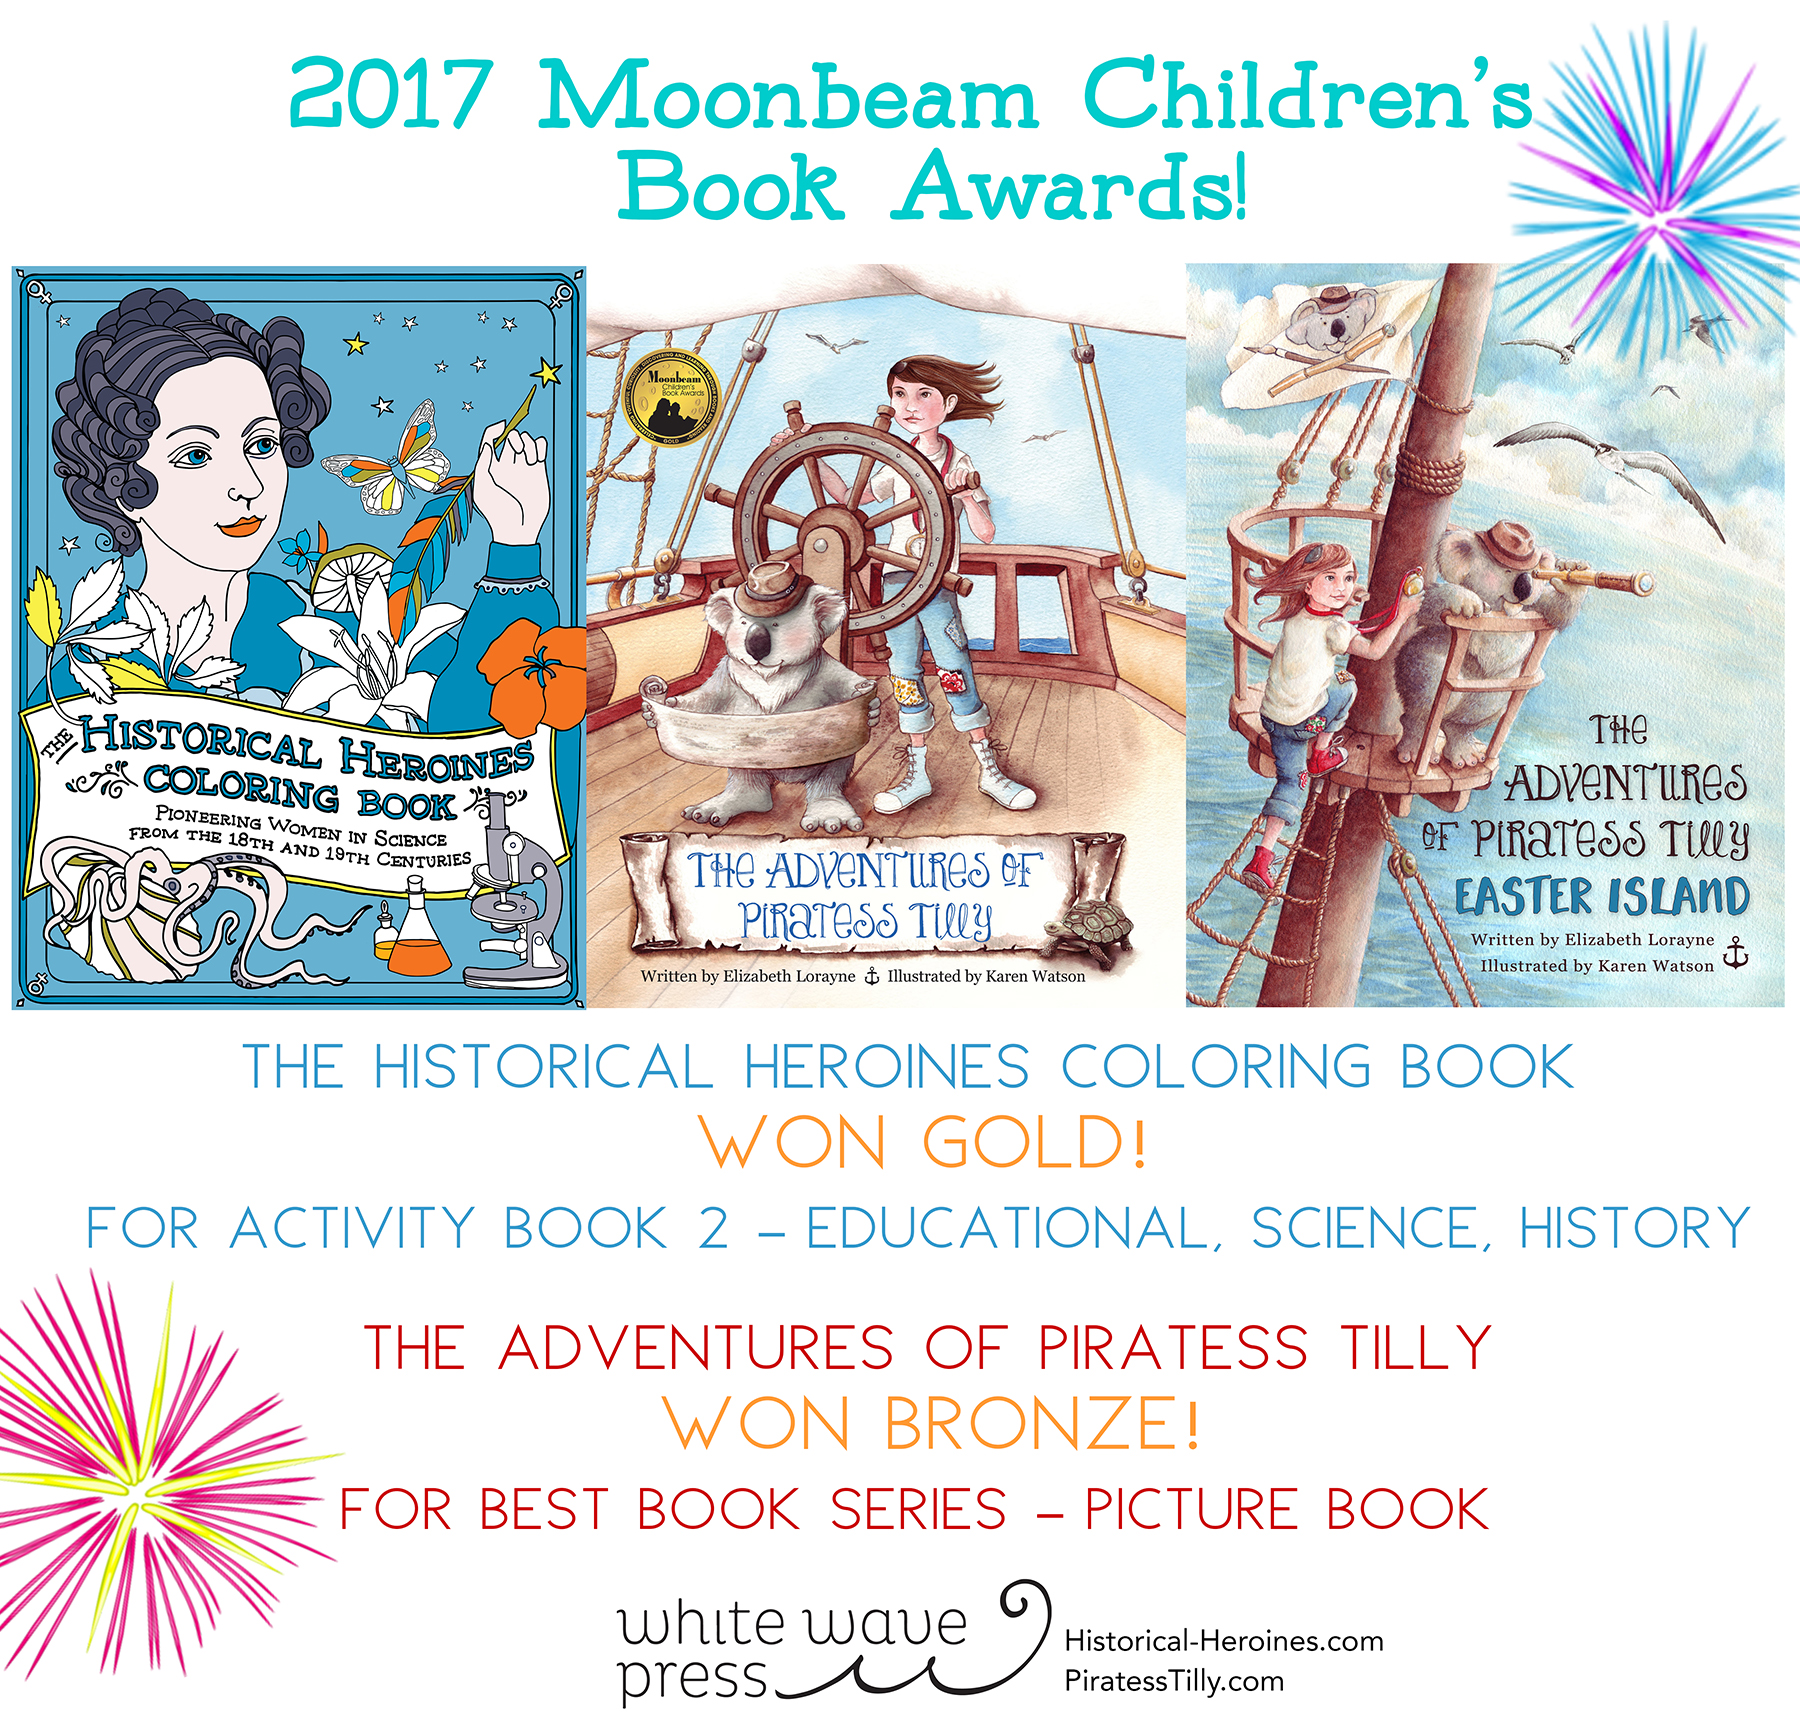 Moonbeam Awards 2017.jpg